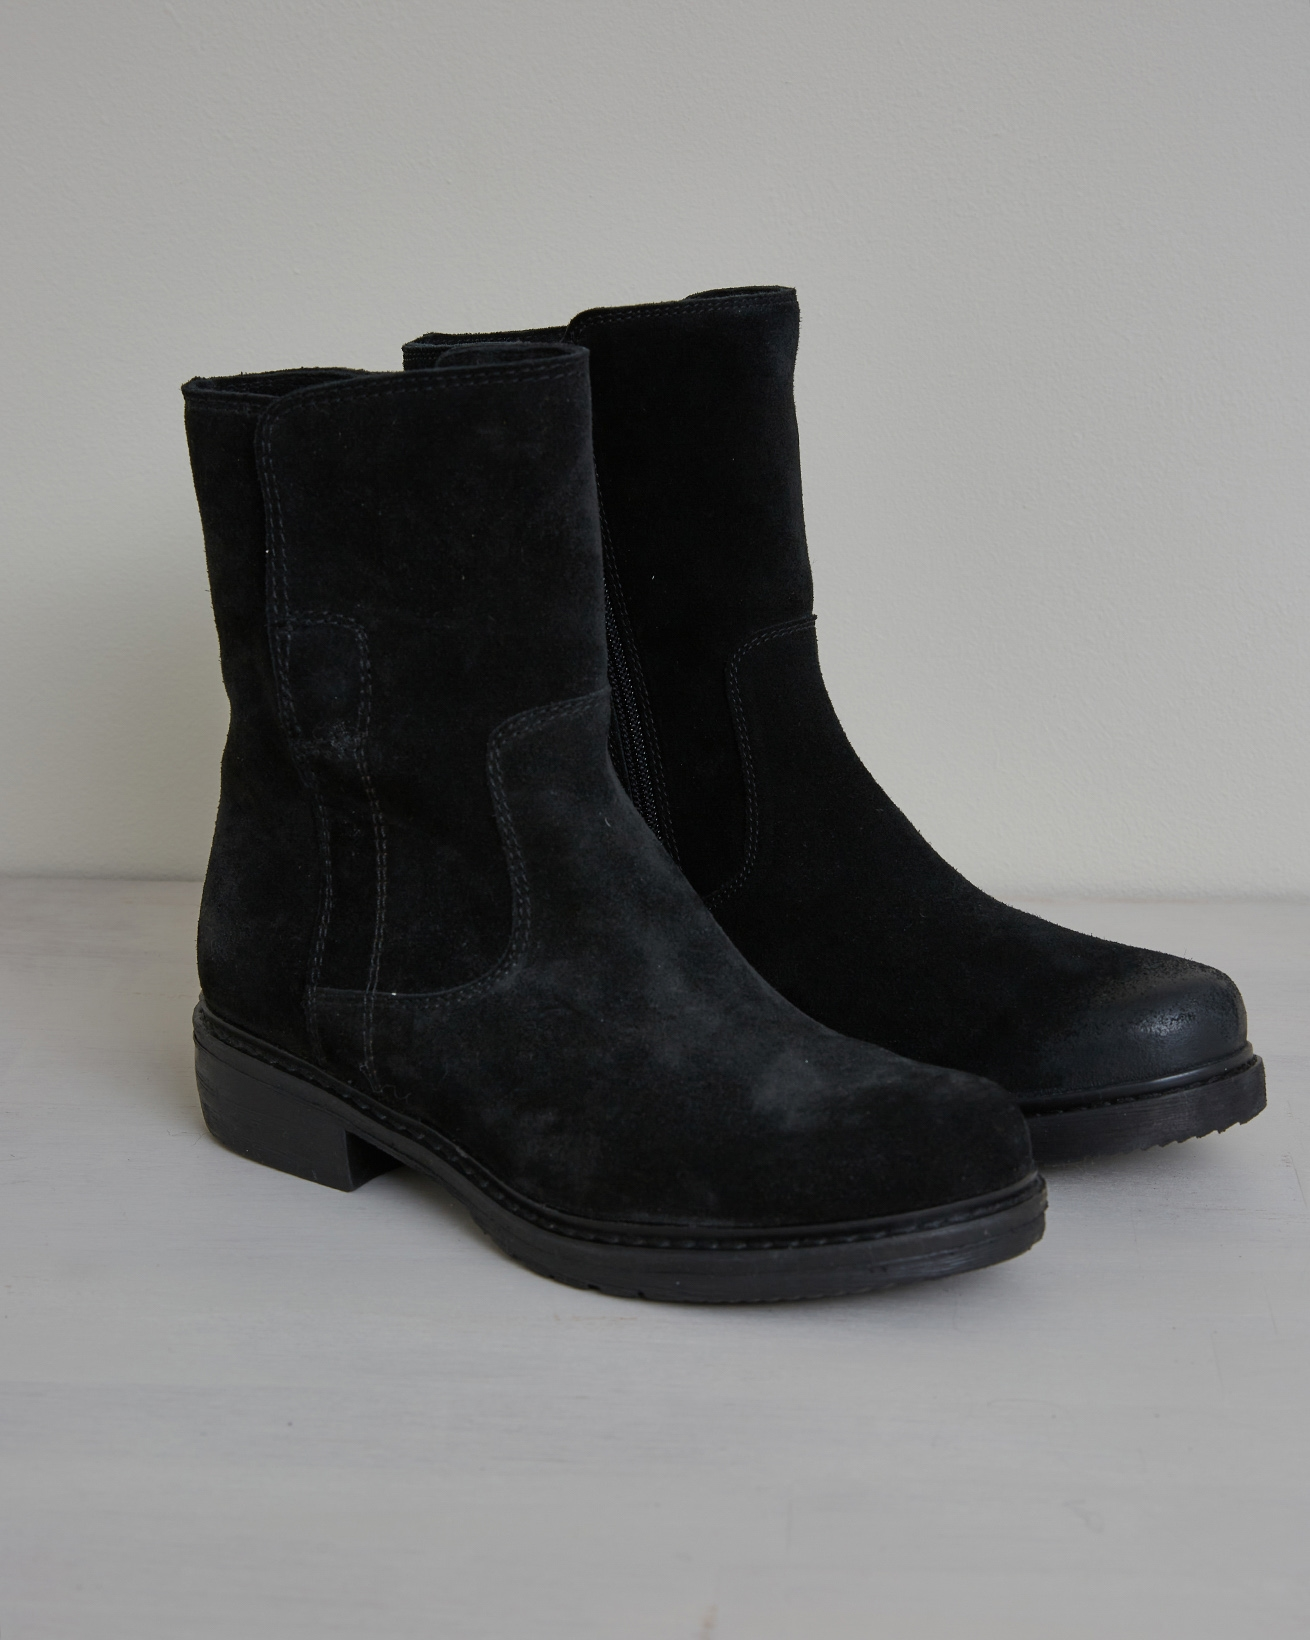 Essential Leather Ankle Boot - Size 37 - Black - 2639